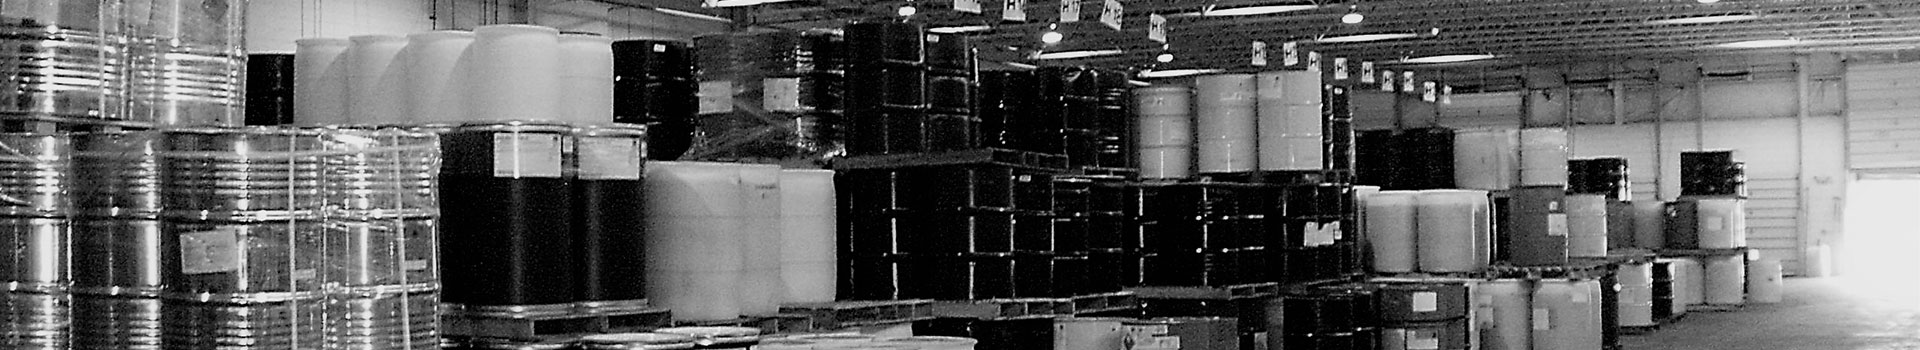 warehouse with stacks of barrels